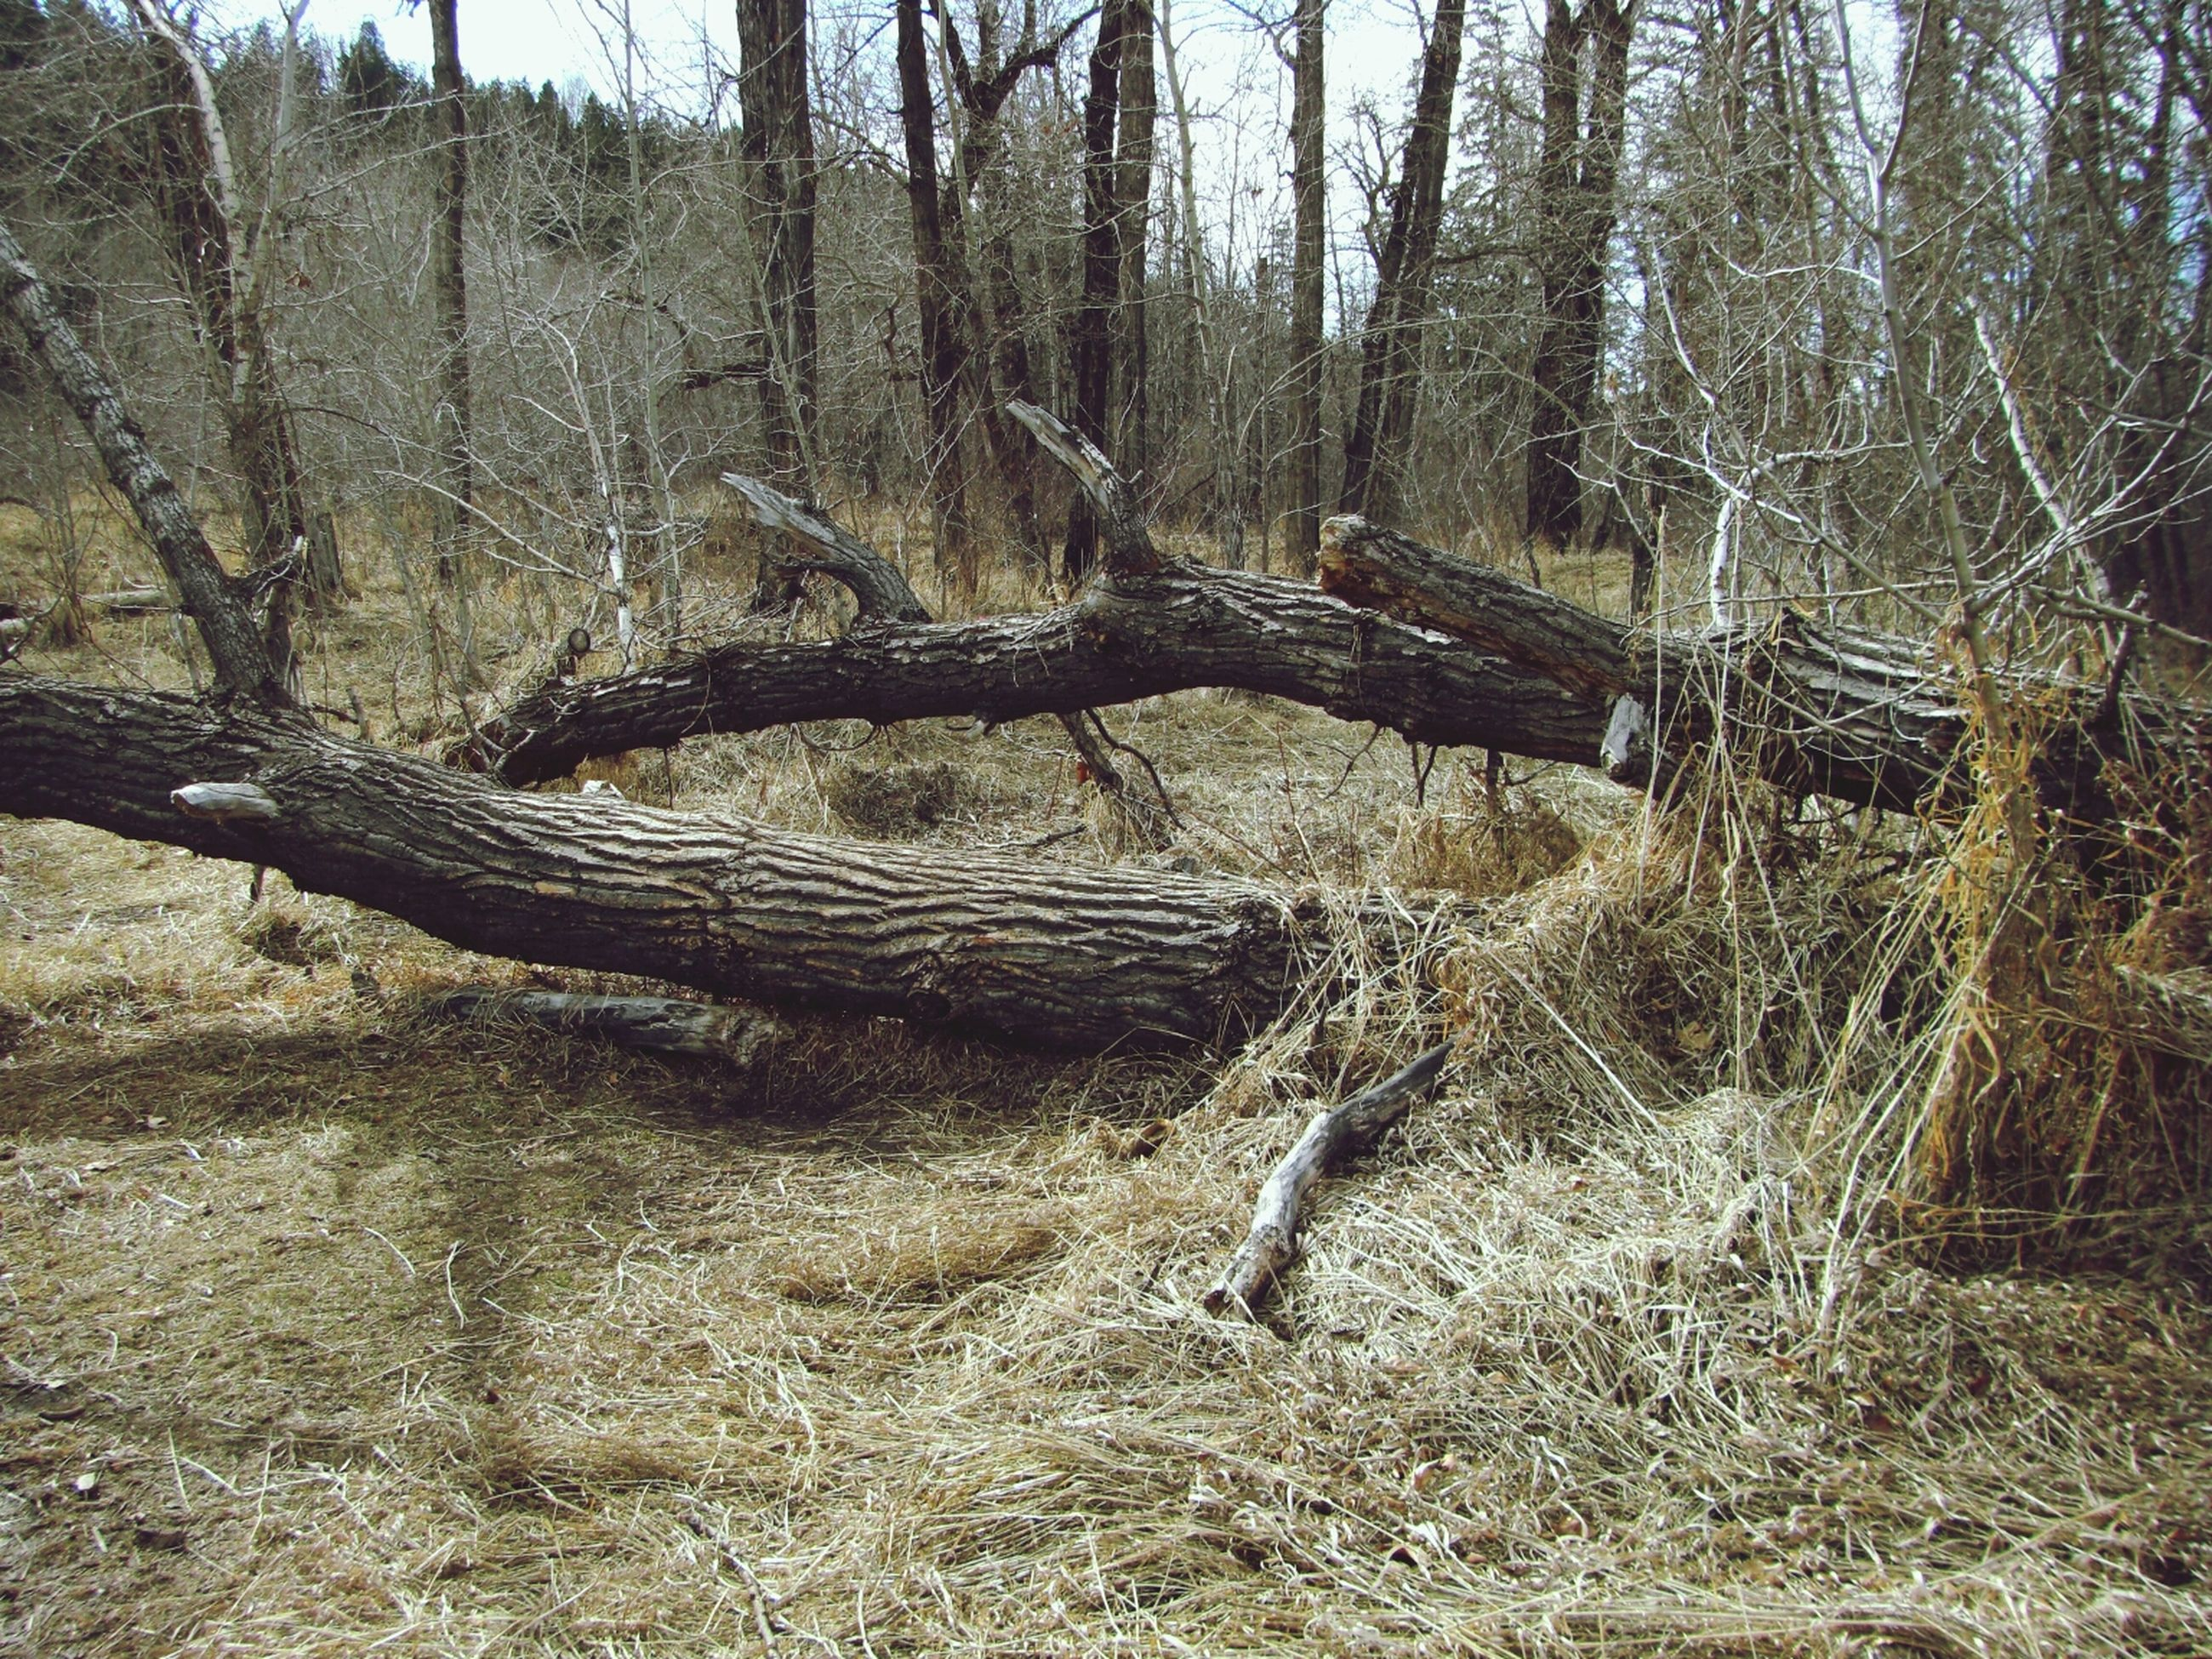 tree, forest, tranquility, tree trunk, nature, tranquil scene, landscape, beauty in nature, non-urban scene, growth, scenics, day, branch, woodland, no people, dead plant, outdoors, bare tree, plant, fallen tree